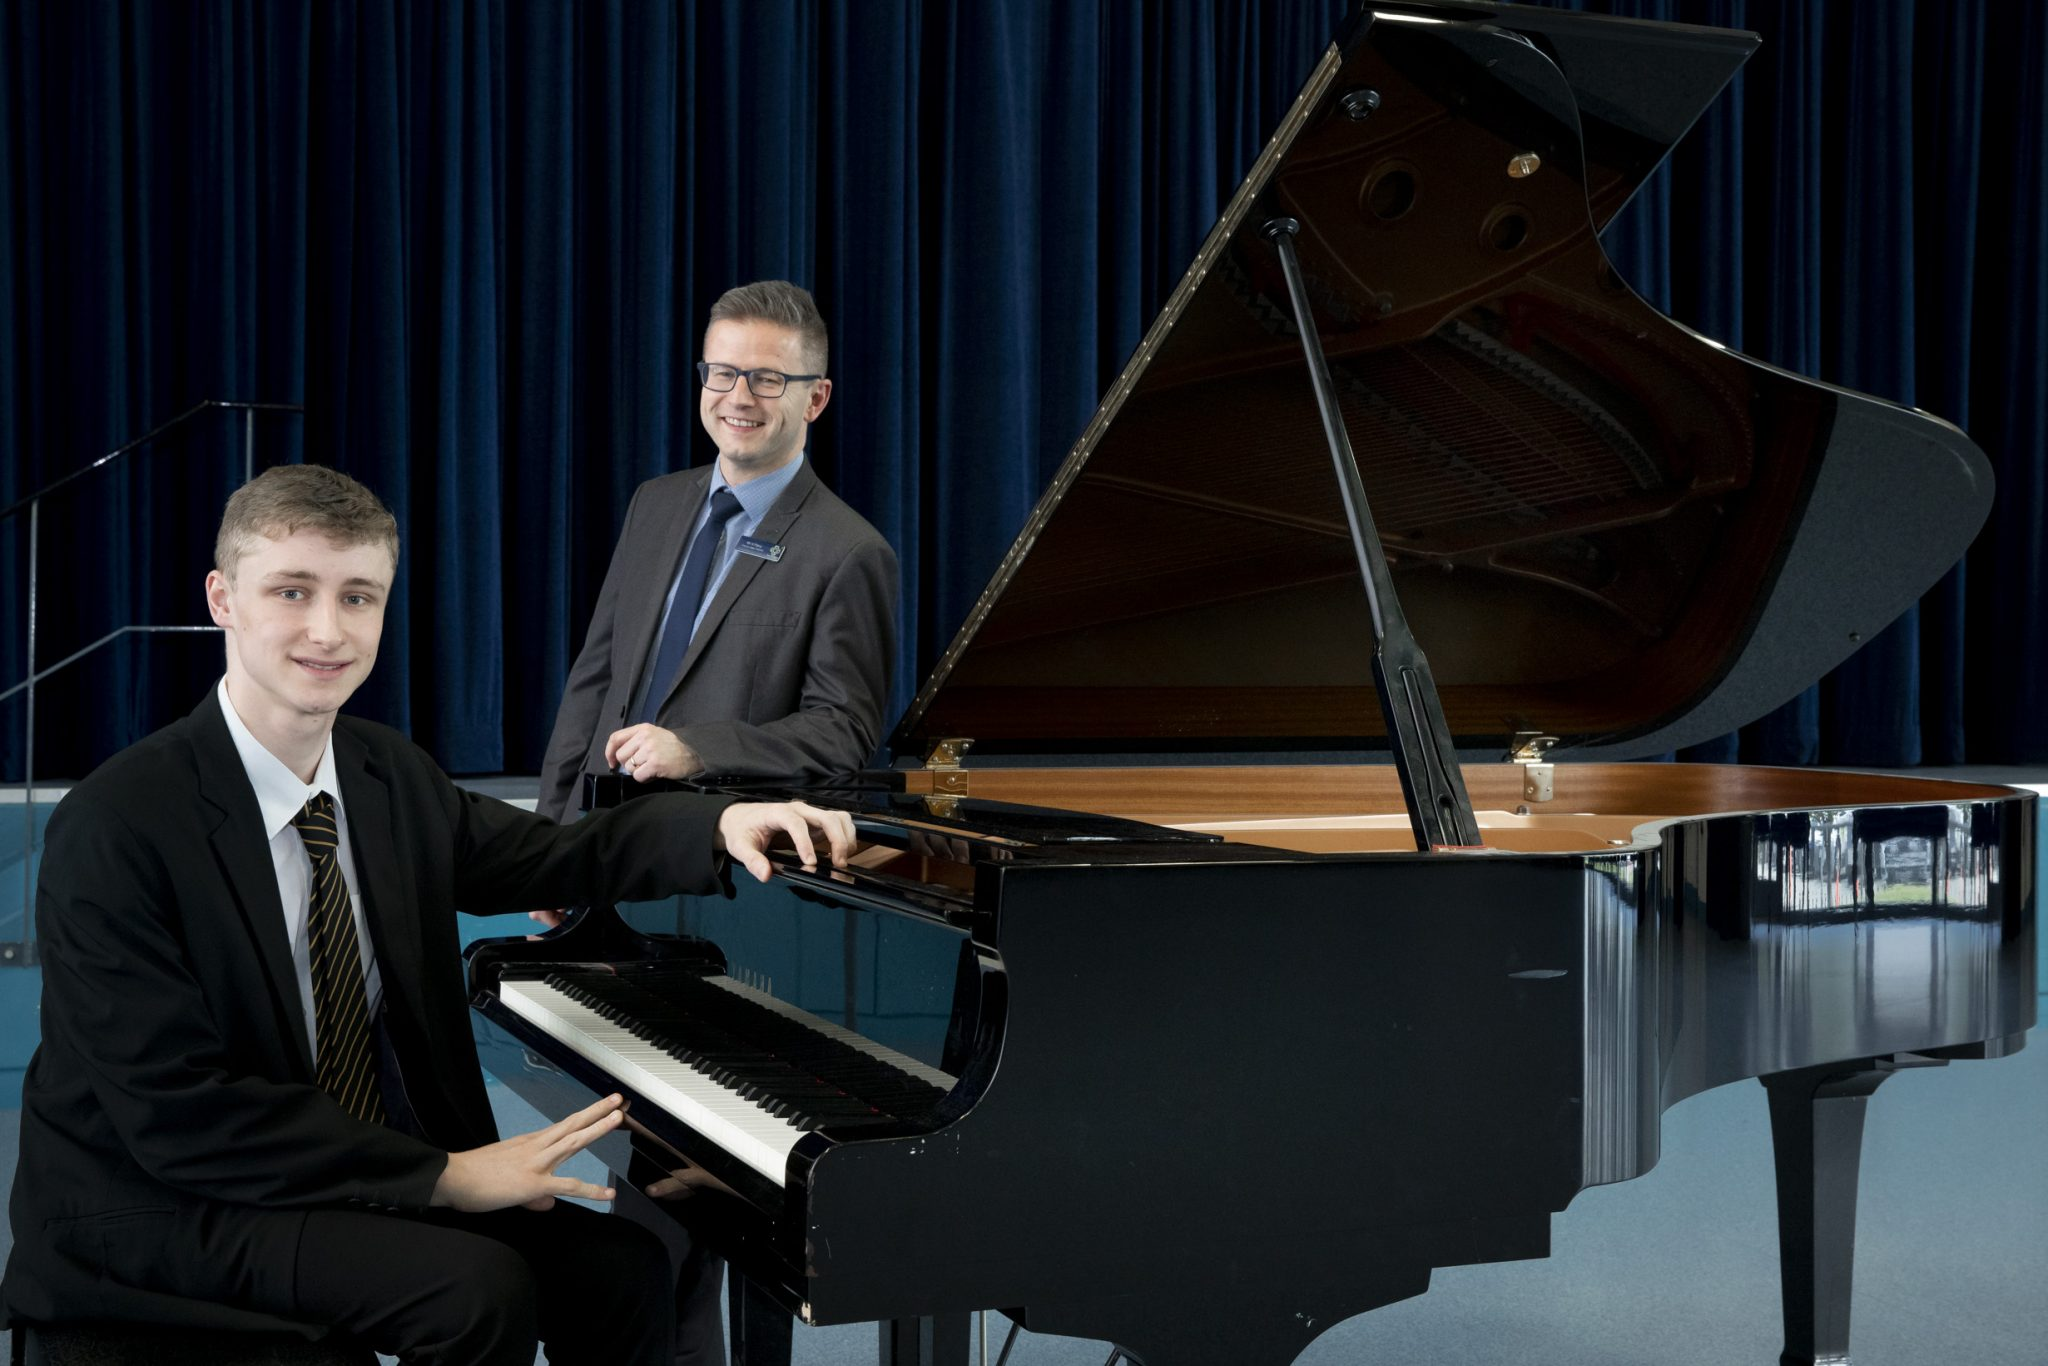 Starring role for young Llandudno piano virtuoso Ellis at music festival